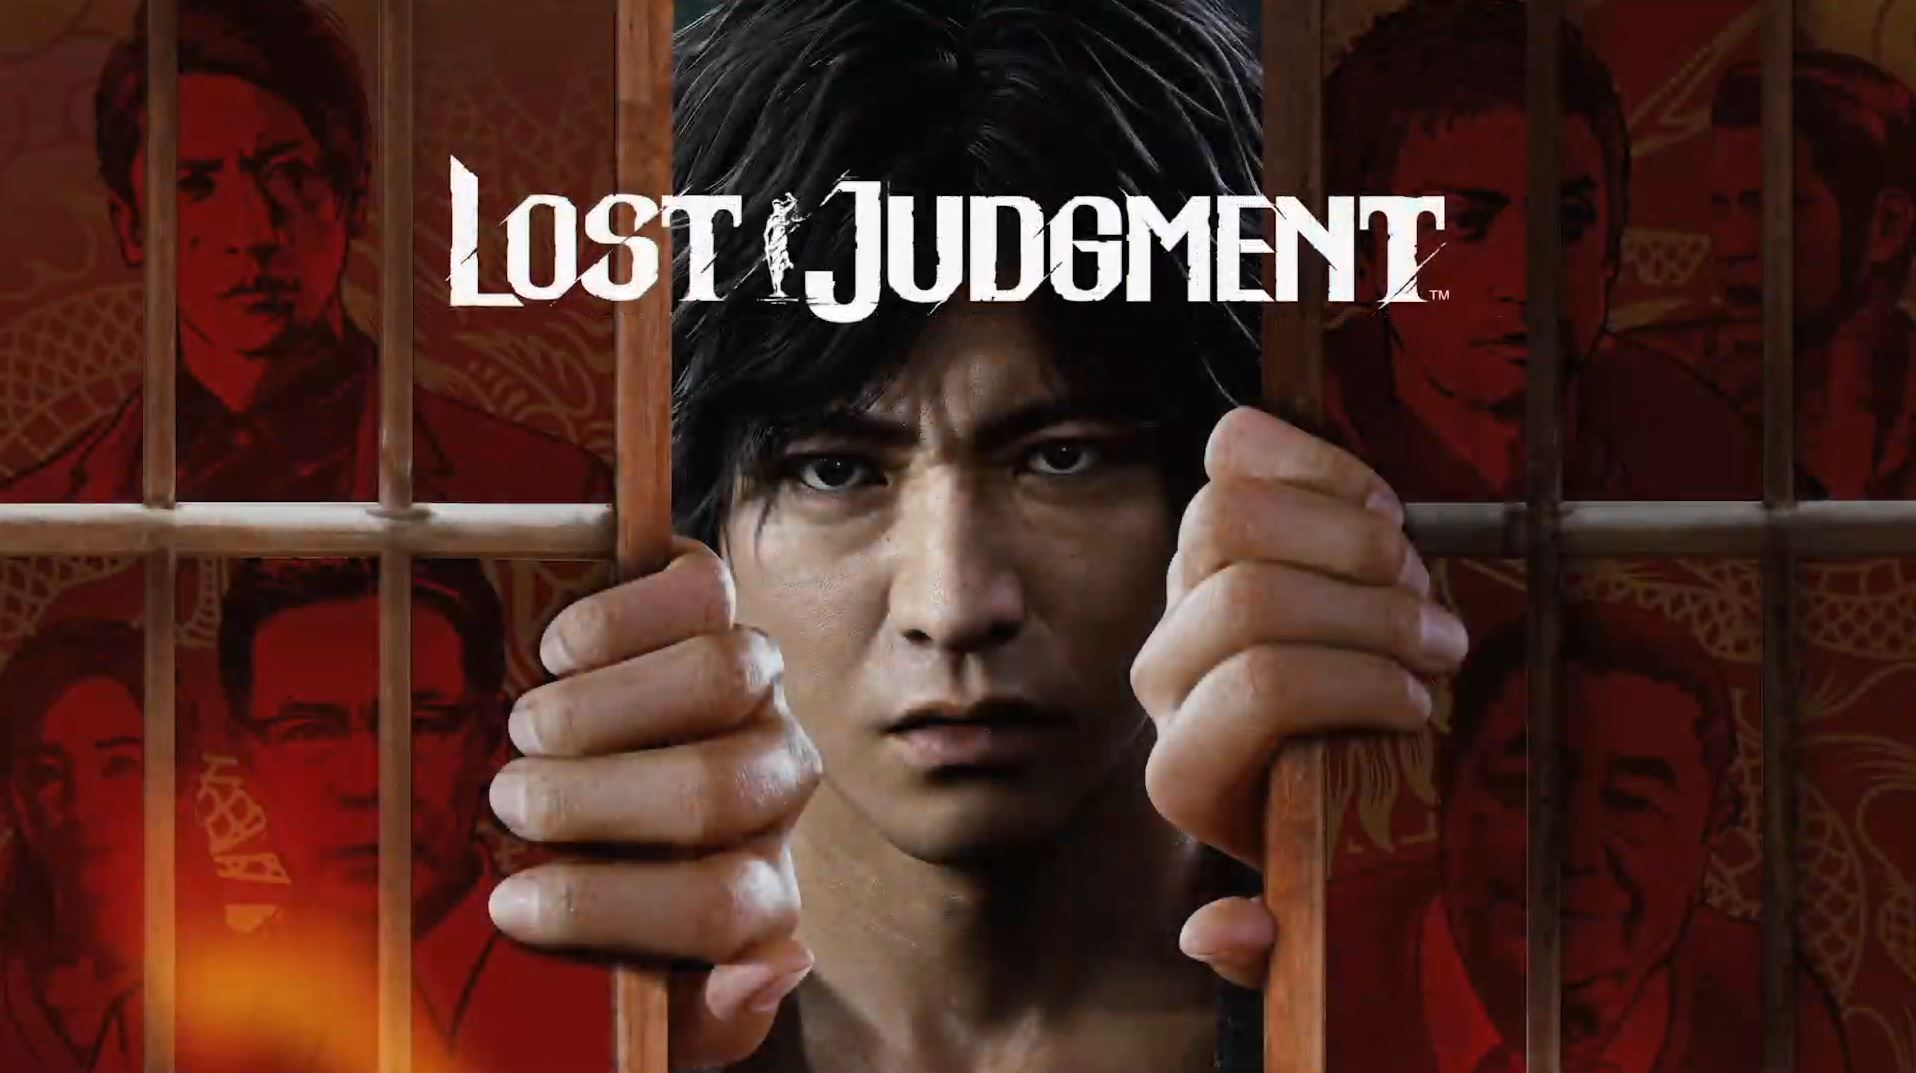 lost-judgment-announced-for-ps5-and-ps4-with-september-release-date-first-details-revealed